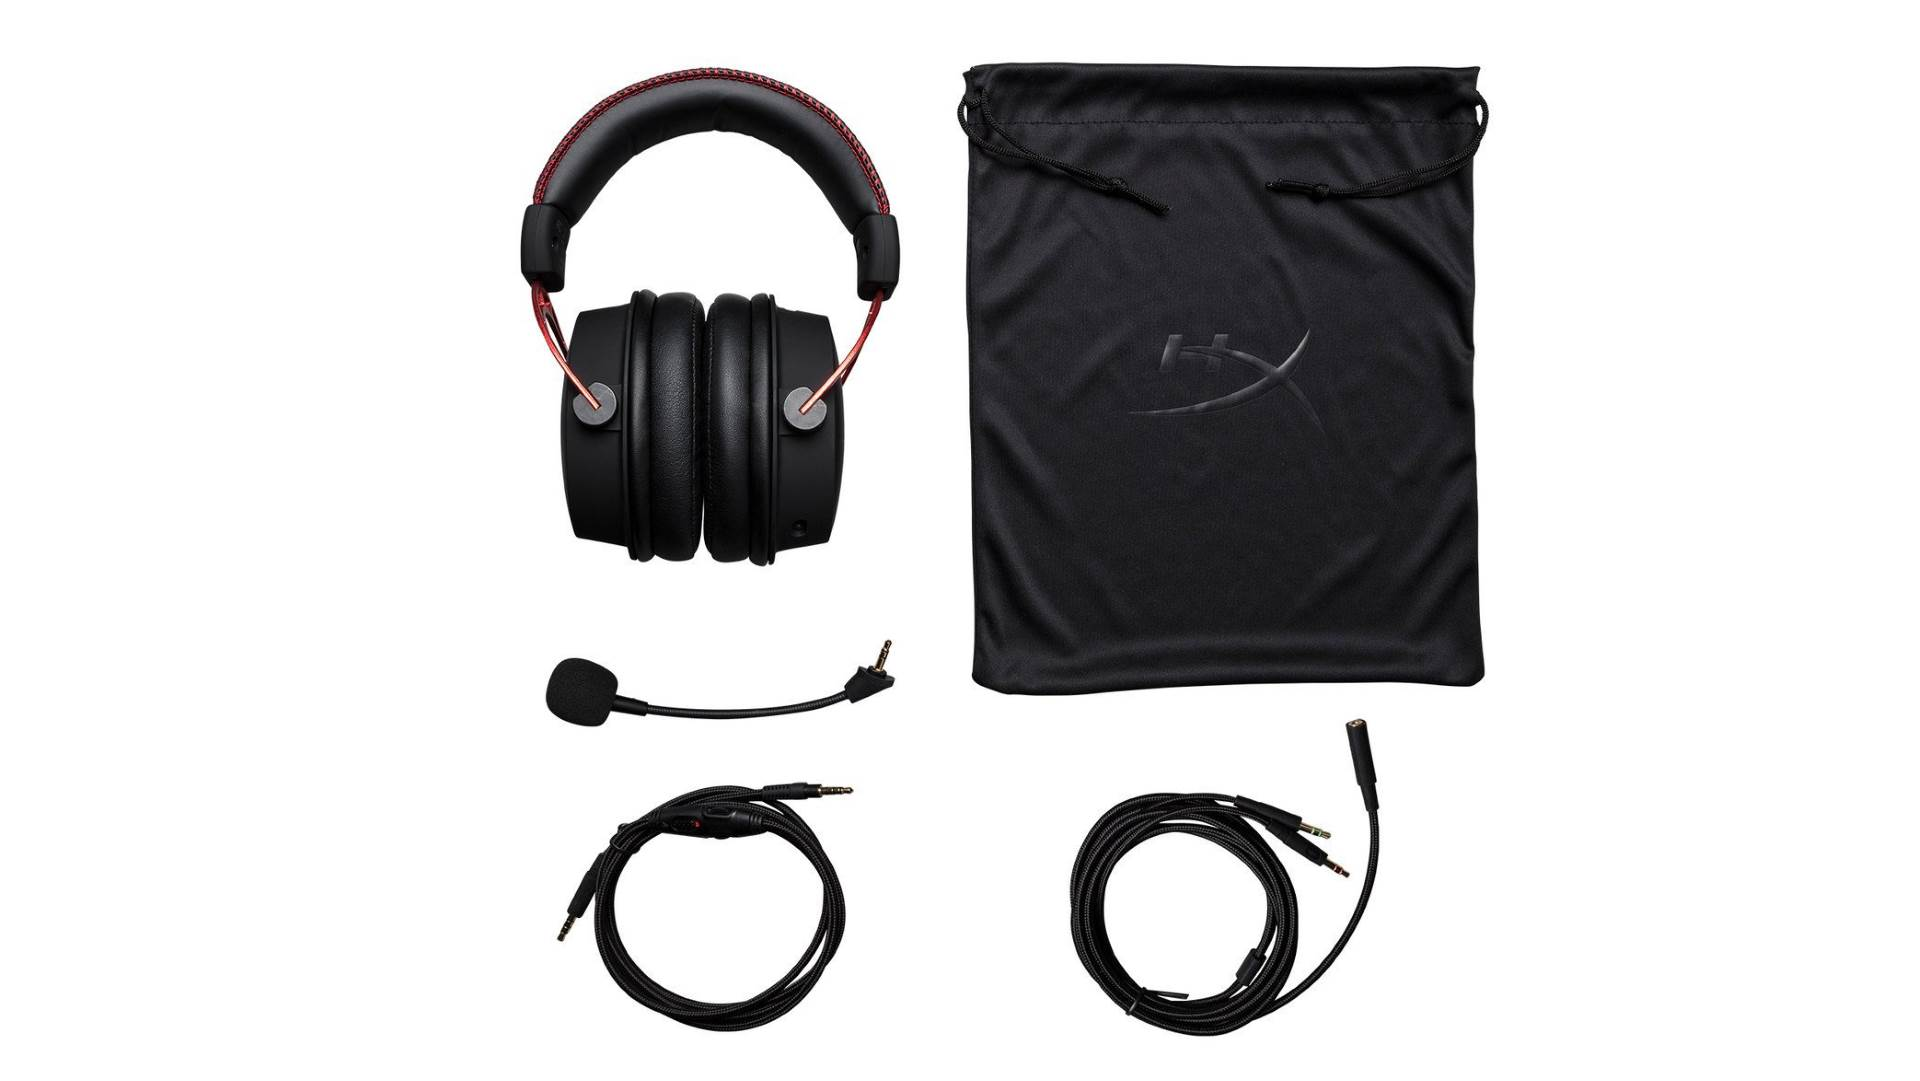 7a15dcff081 HyperX Cloud Alpha review: setting the gold standard for gaming ...